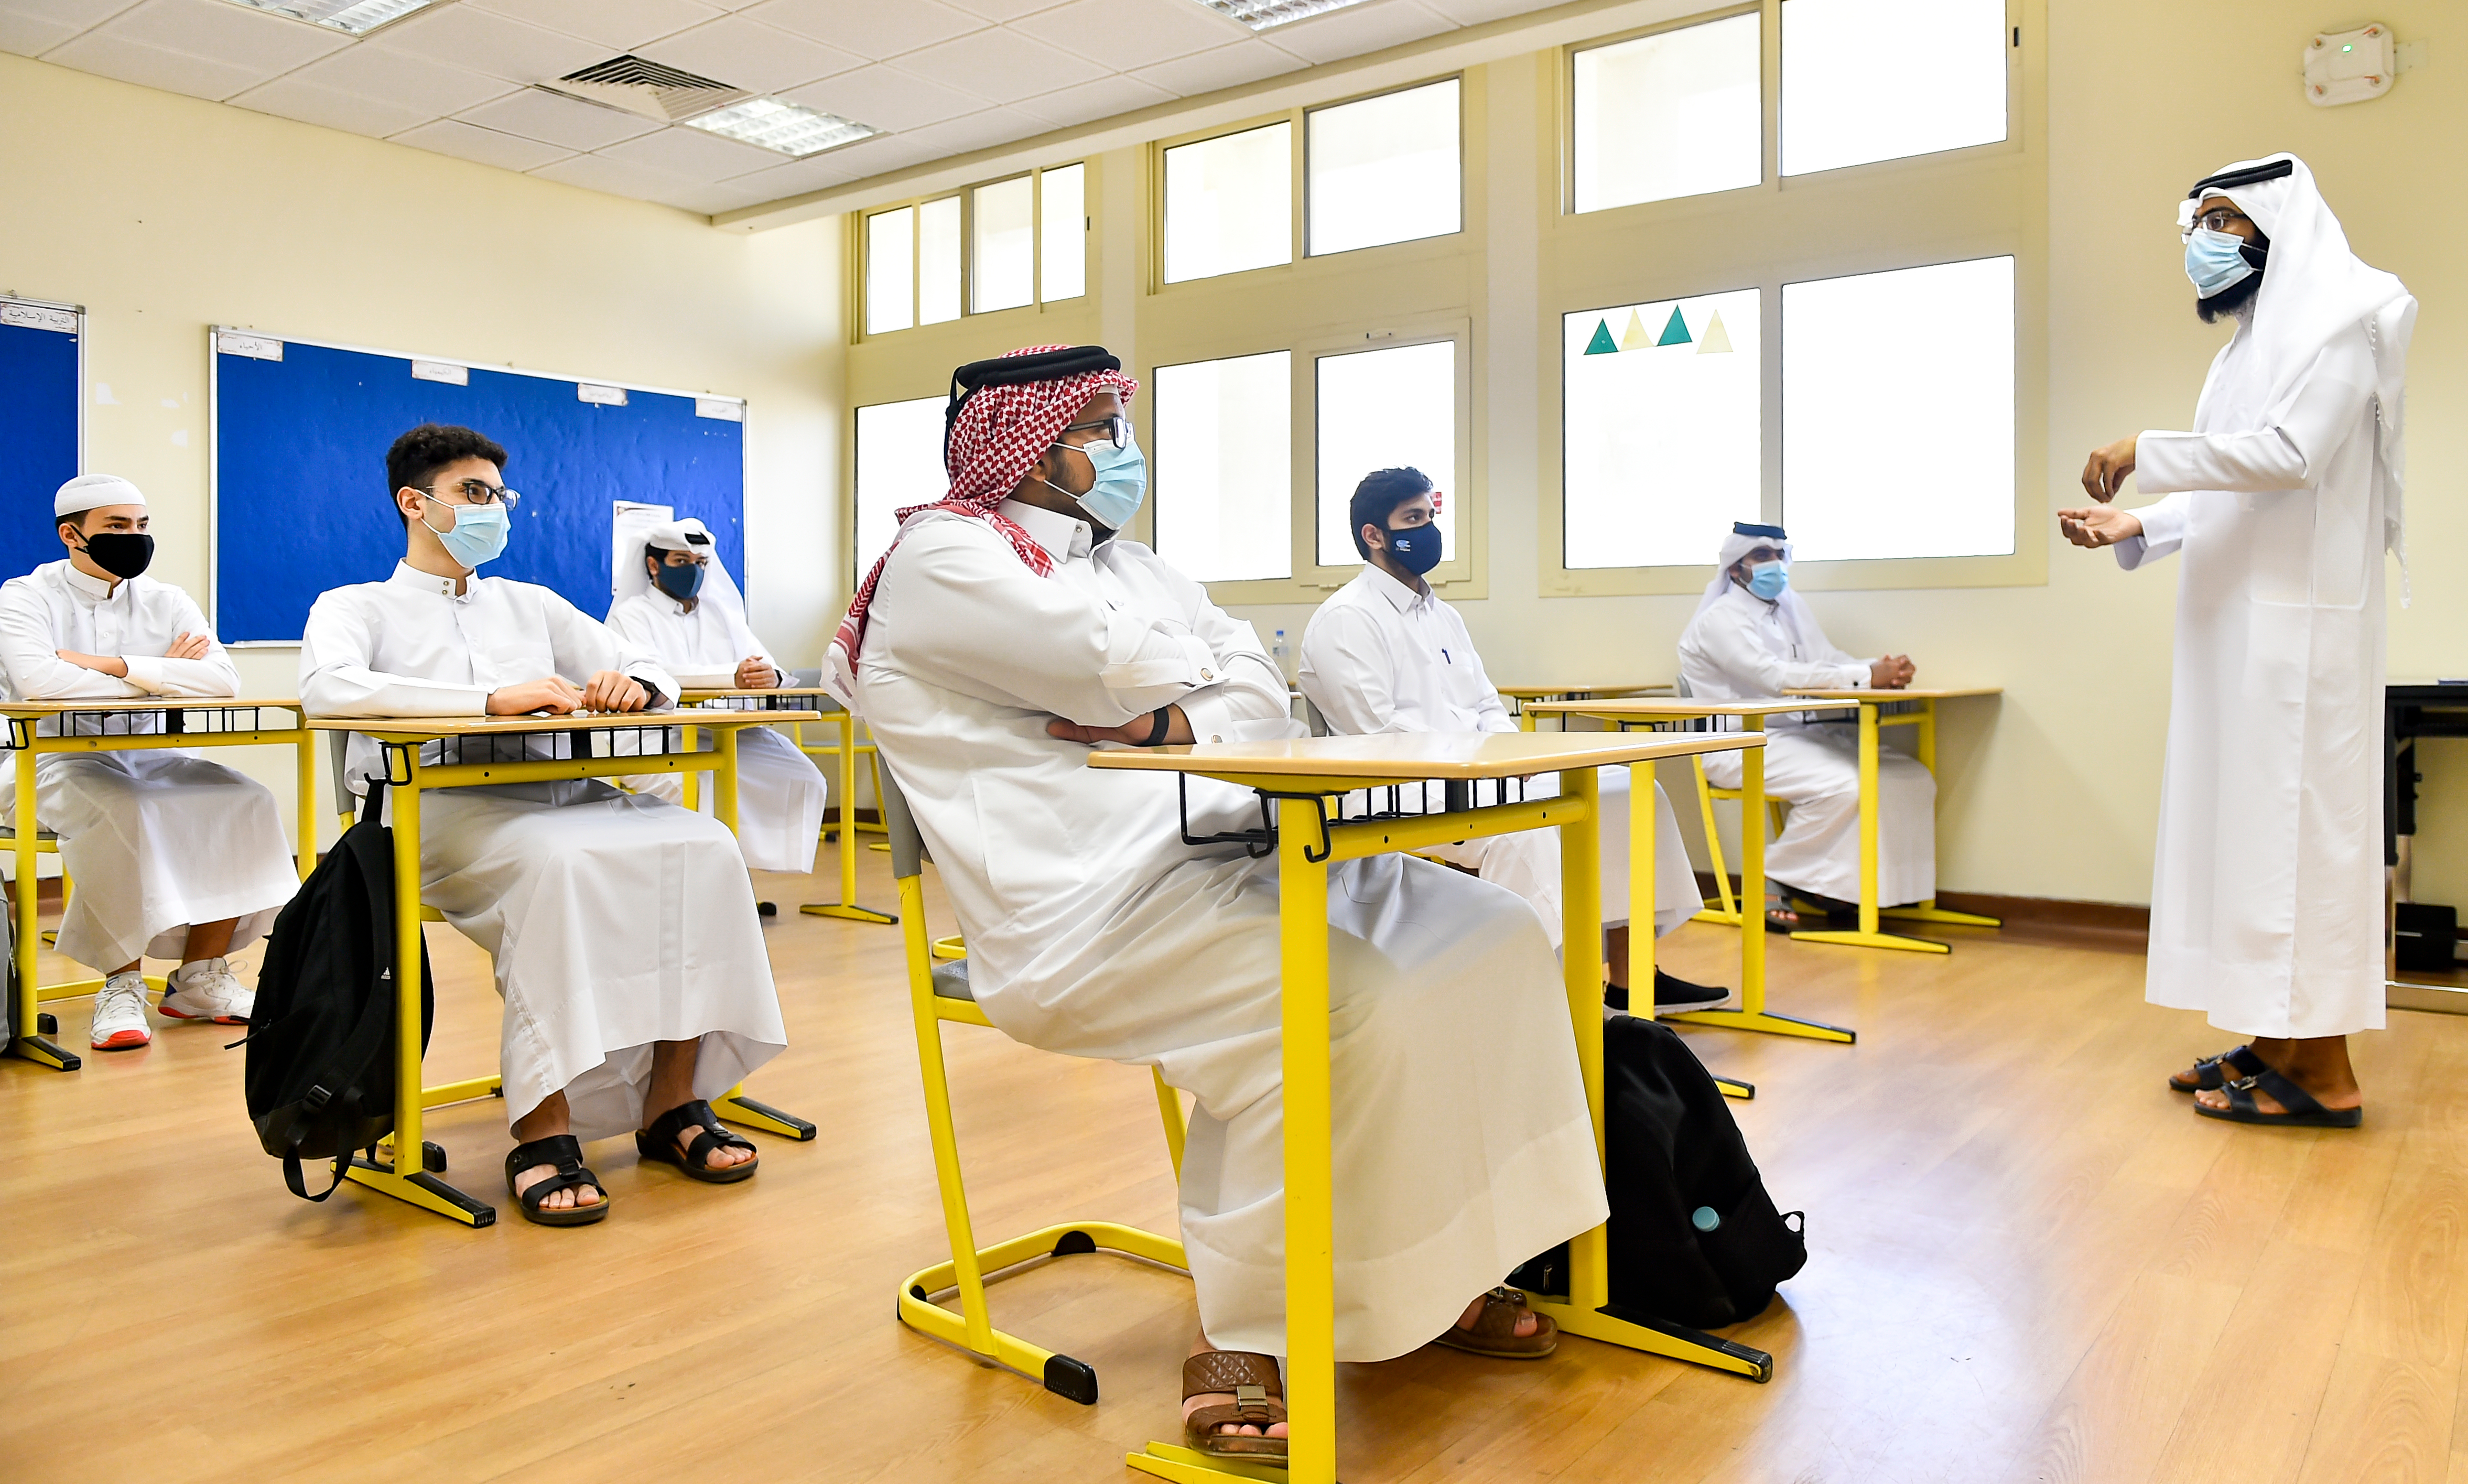 Students wear face masks and maintain social distance in a classroom on the first day of school at a Secondary School in Doha, Qatar.